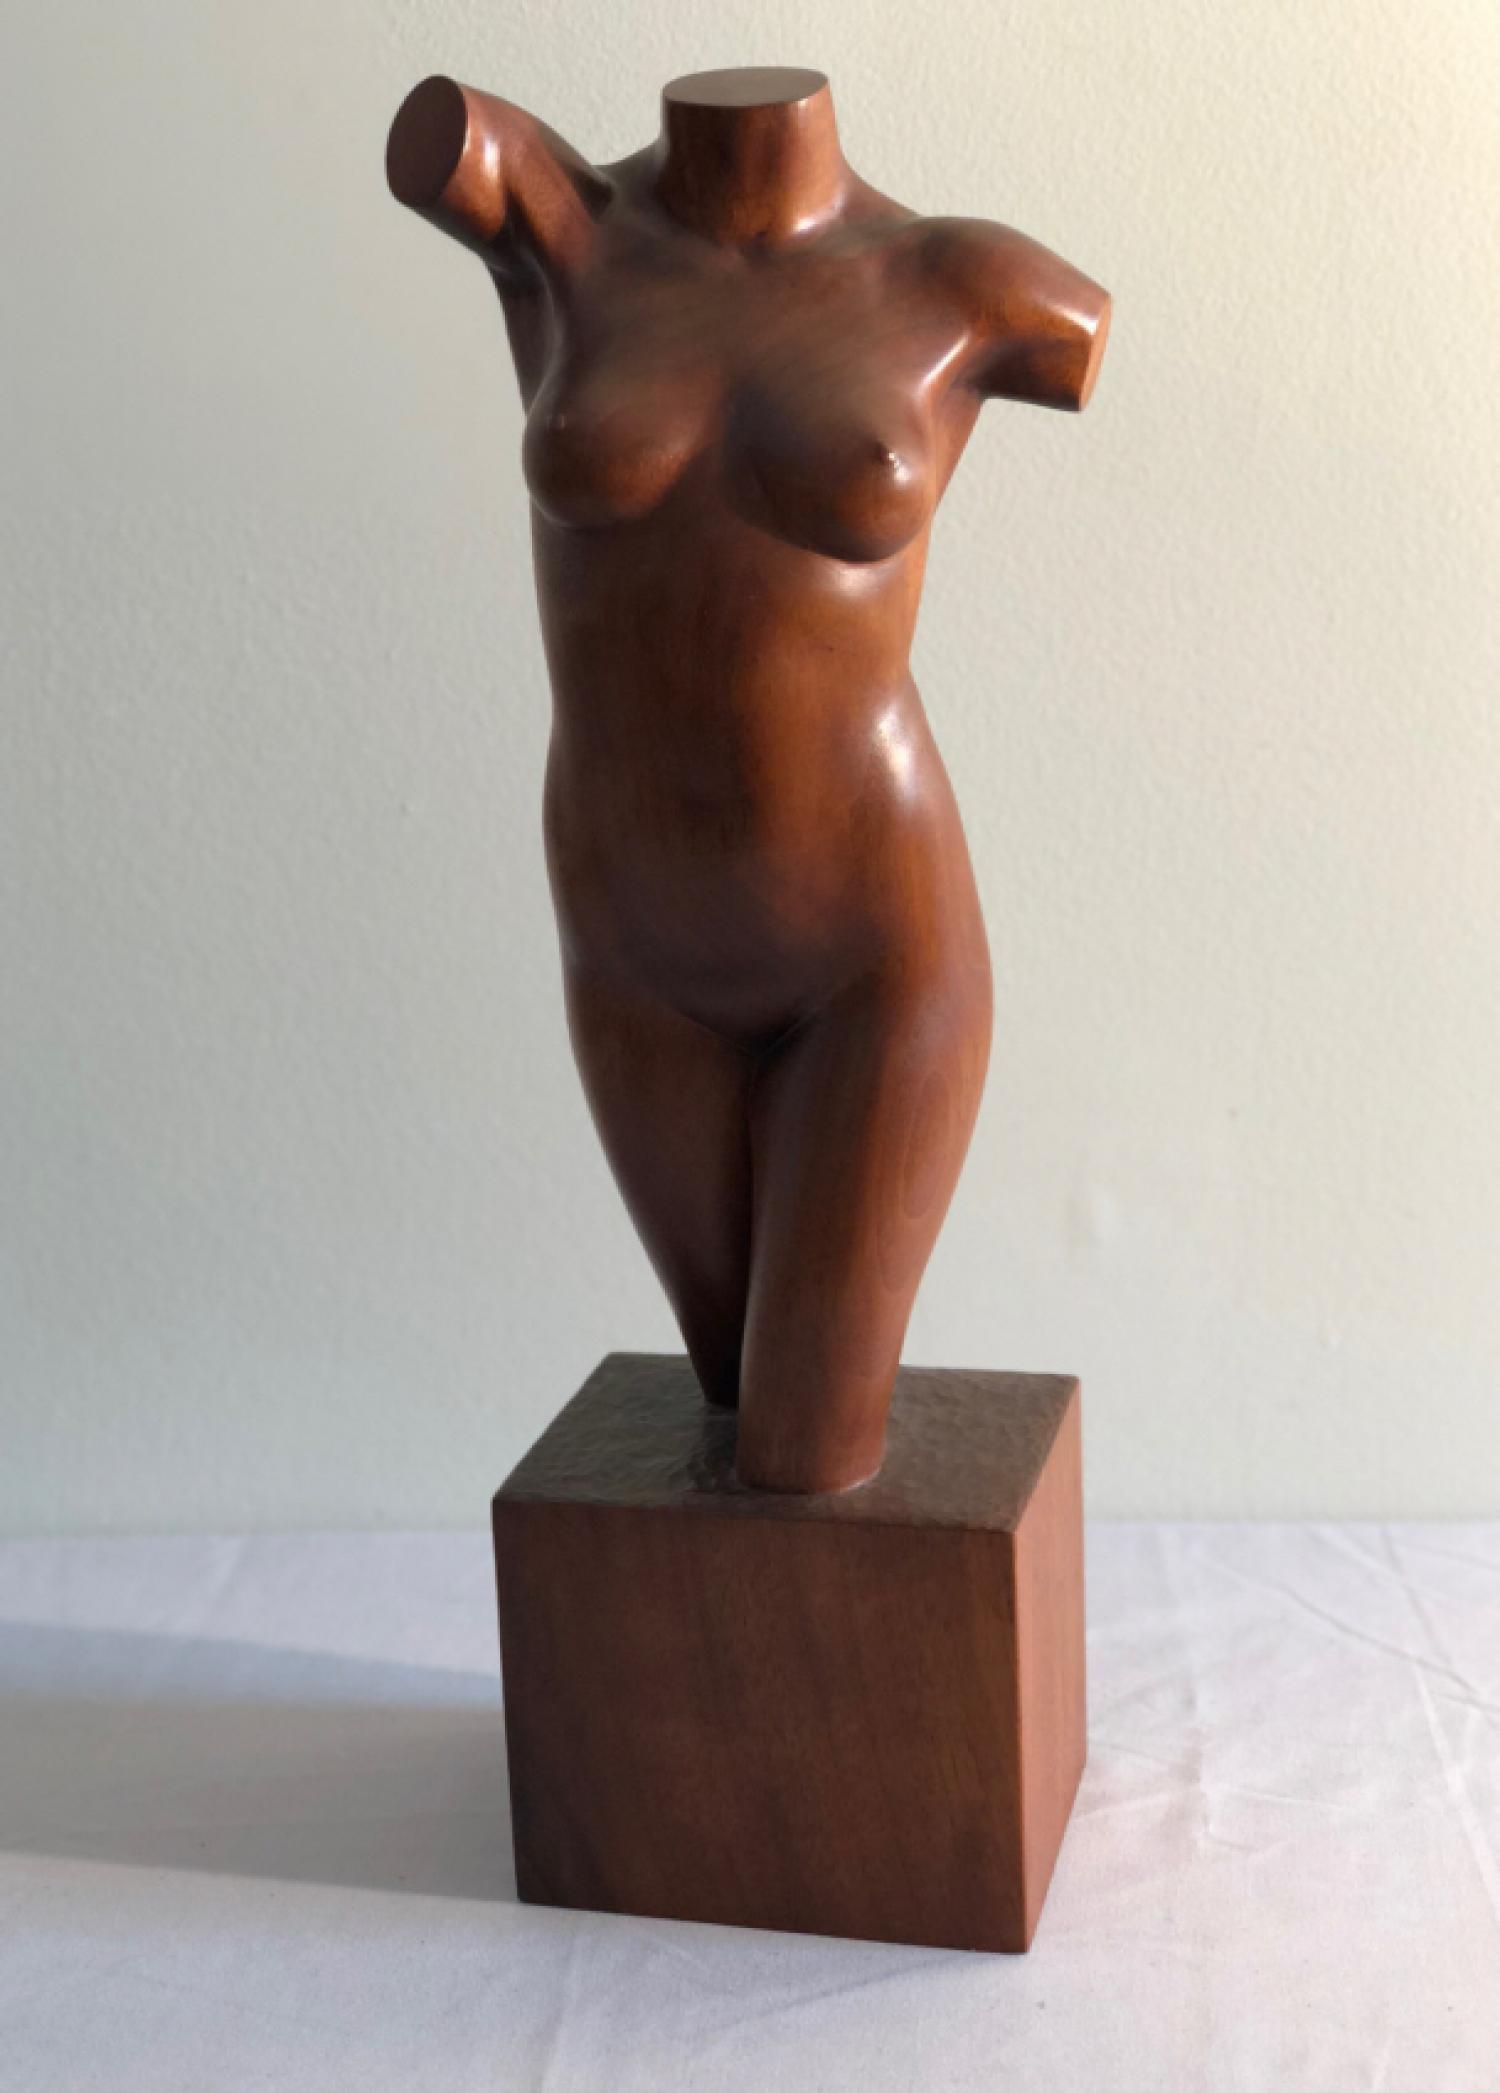 Norman Legassie Sculpture nude female torso wood carving 1991